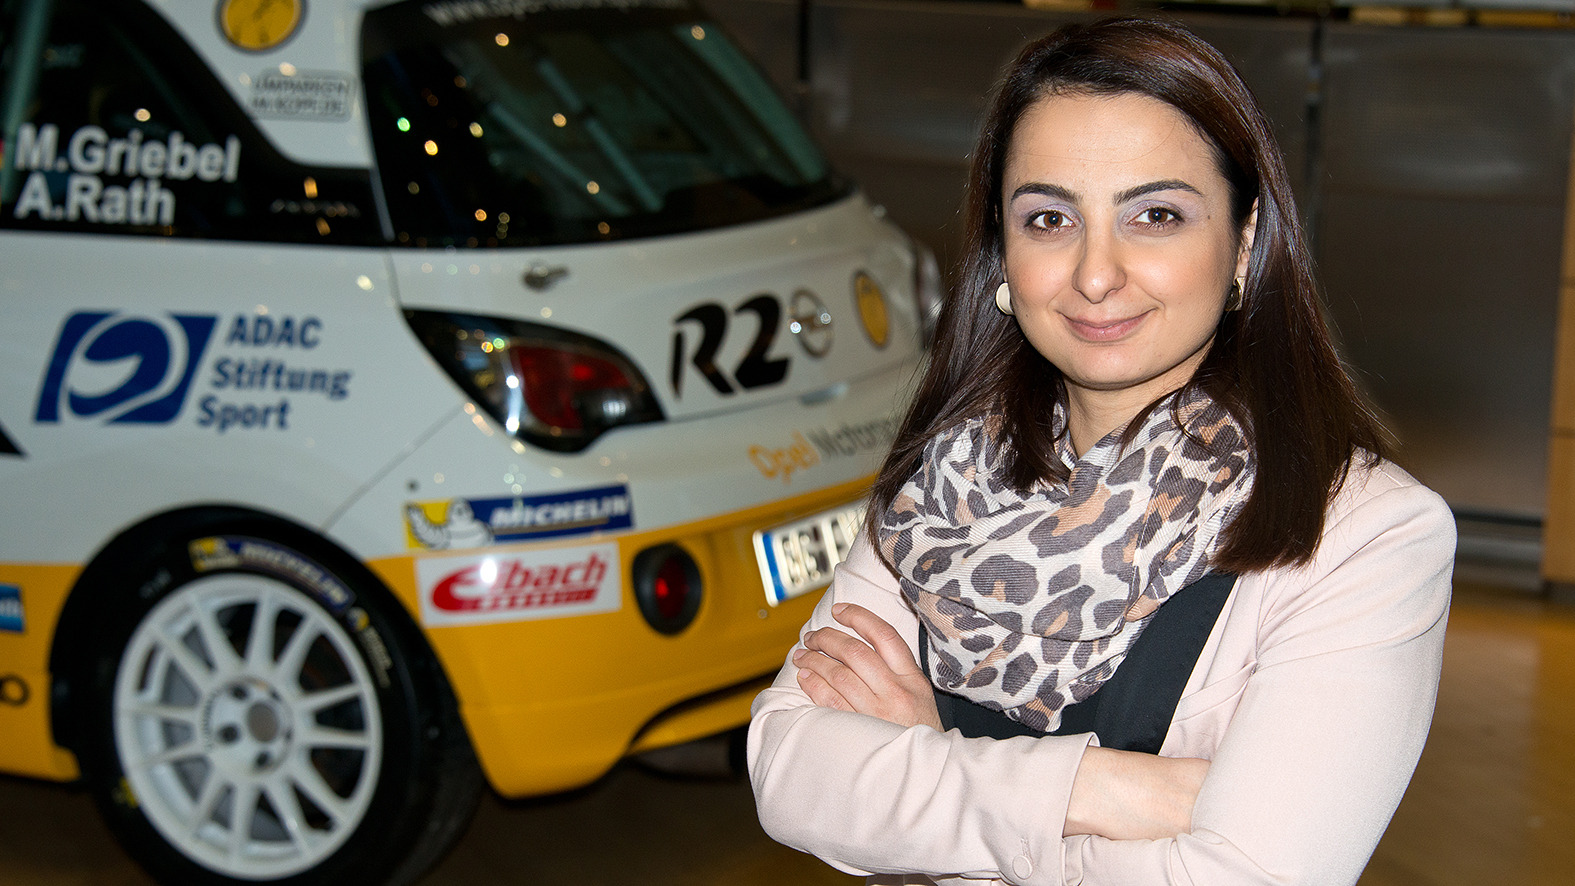 Aysel Kirazli, aged 32, in front of her favorite Opel, the R2, in the Adam Opel Building